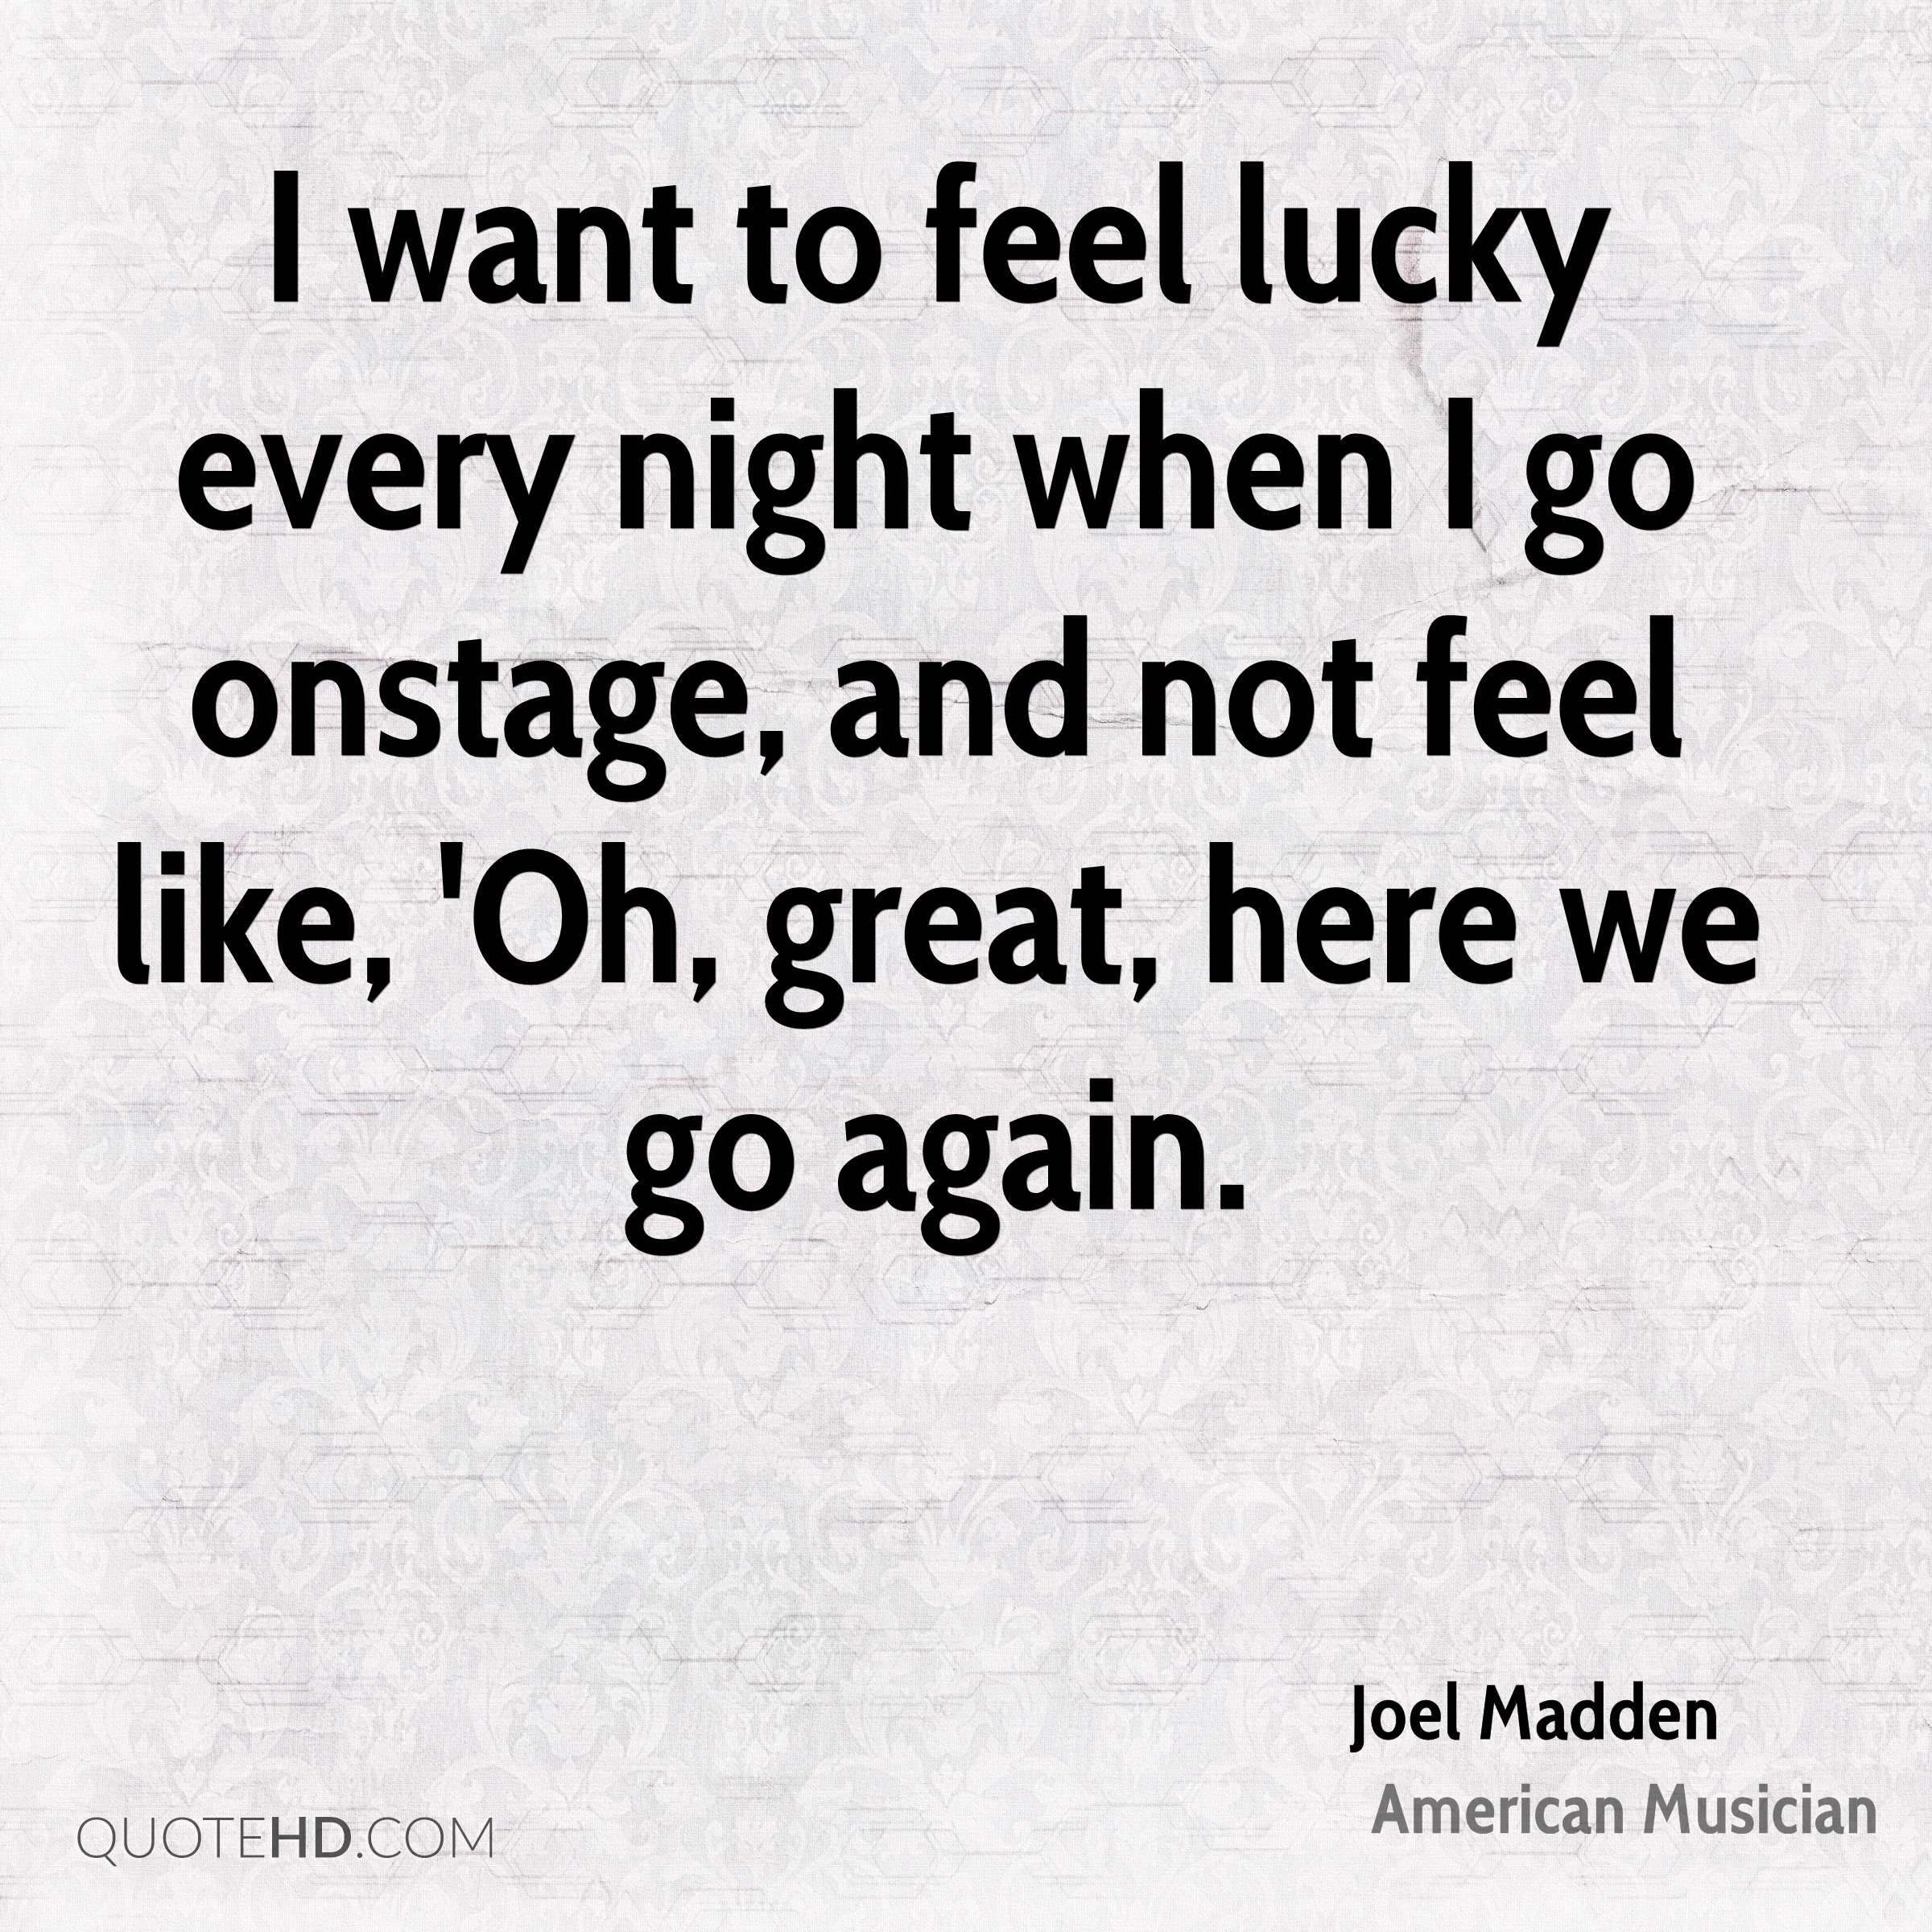 I want to feel lucky every night when I go onstage, and not feel like, 'Oh, great, here we go again.